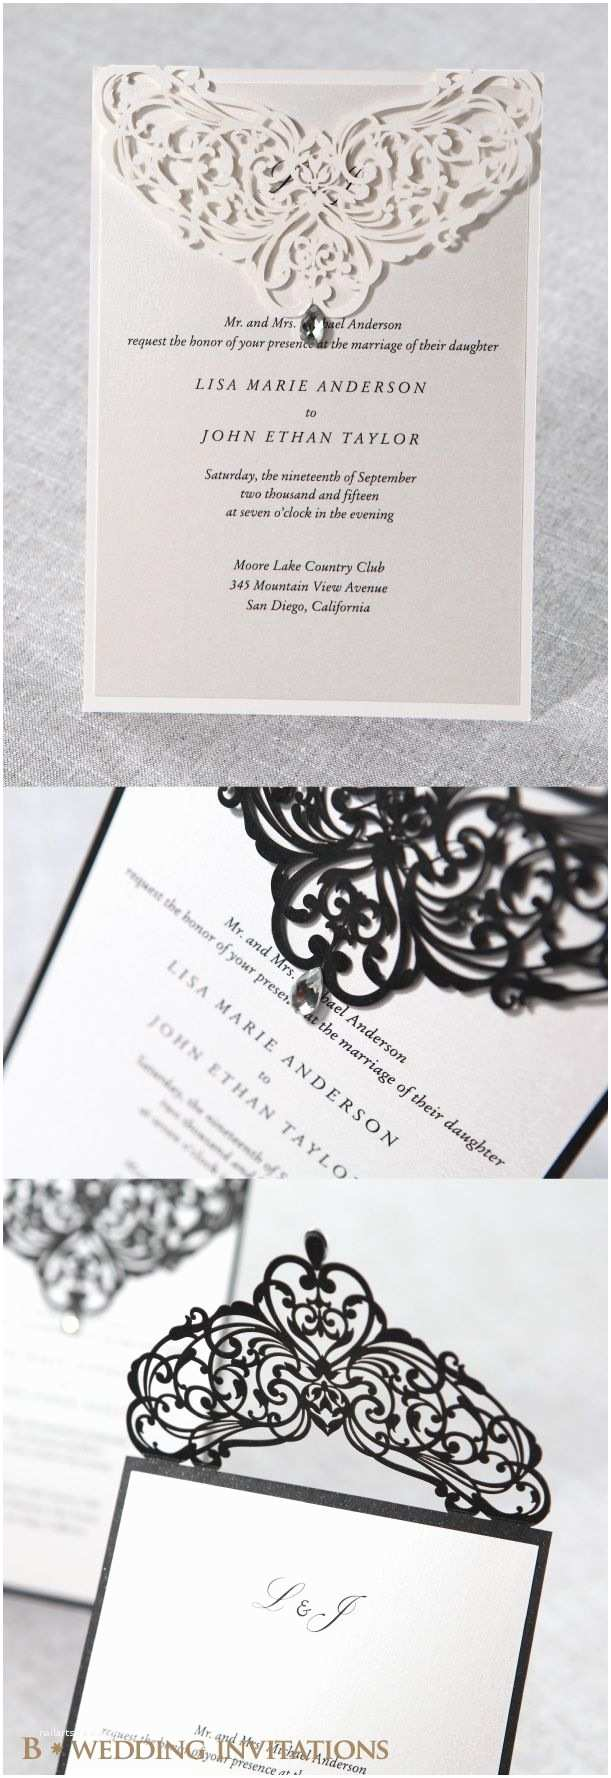 Jeweled Wedding Invitations Jeweled Romance Laser Cut by B Wedding Invitations